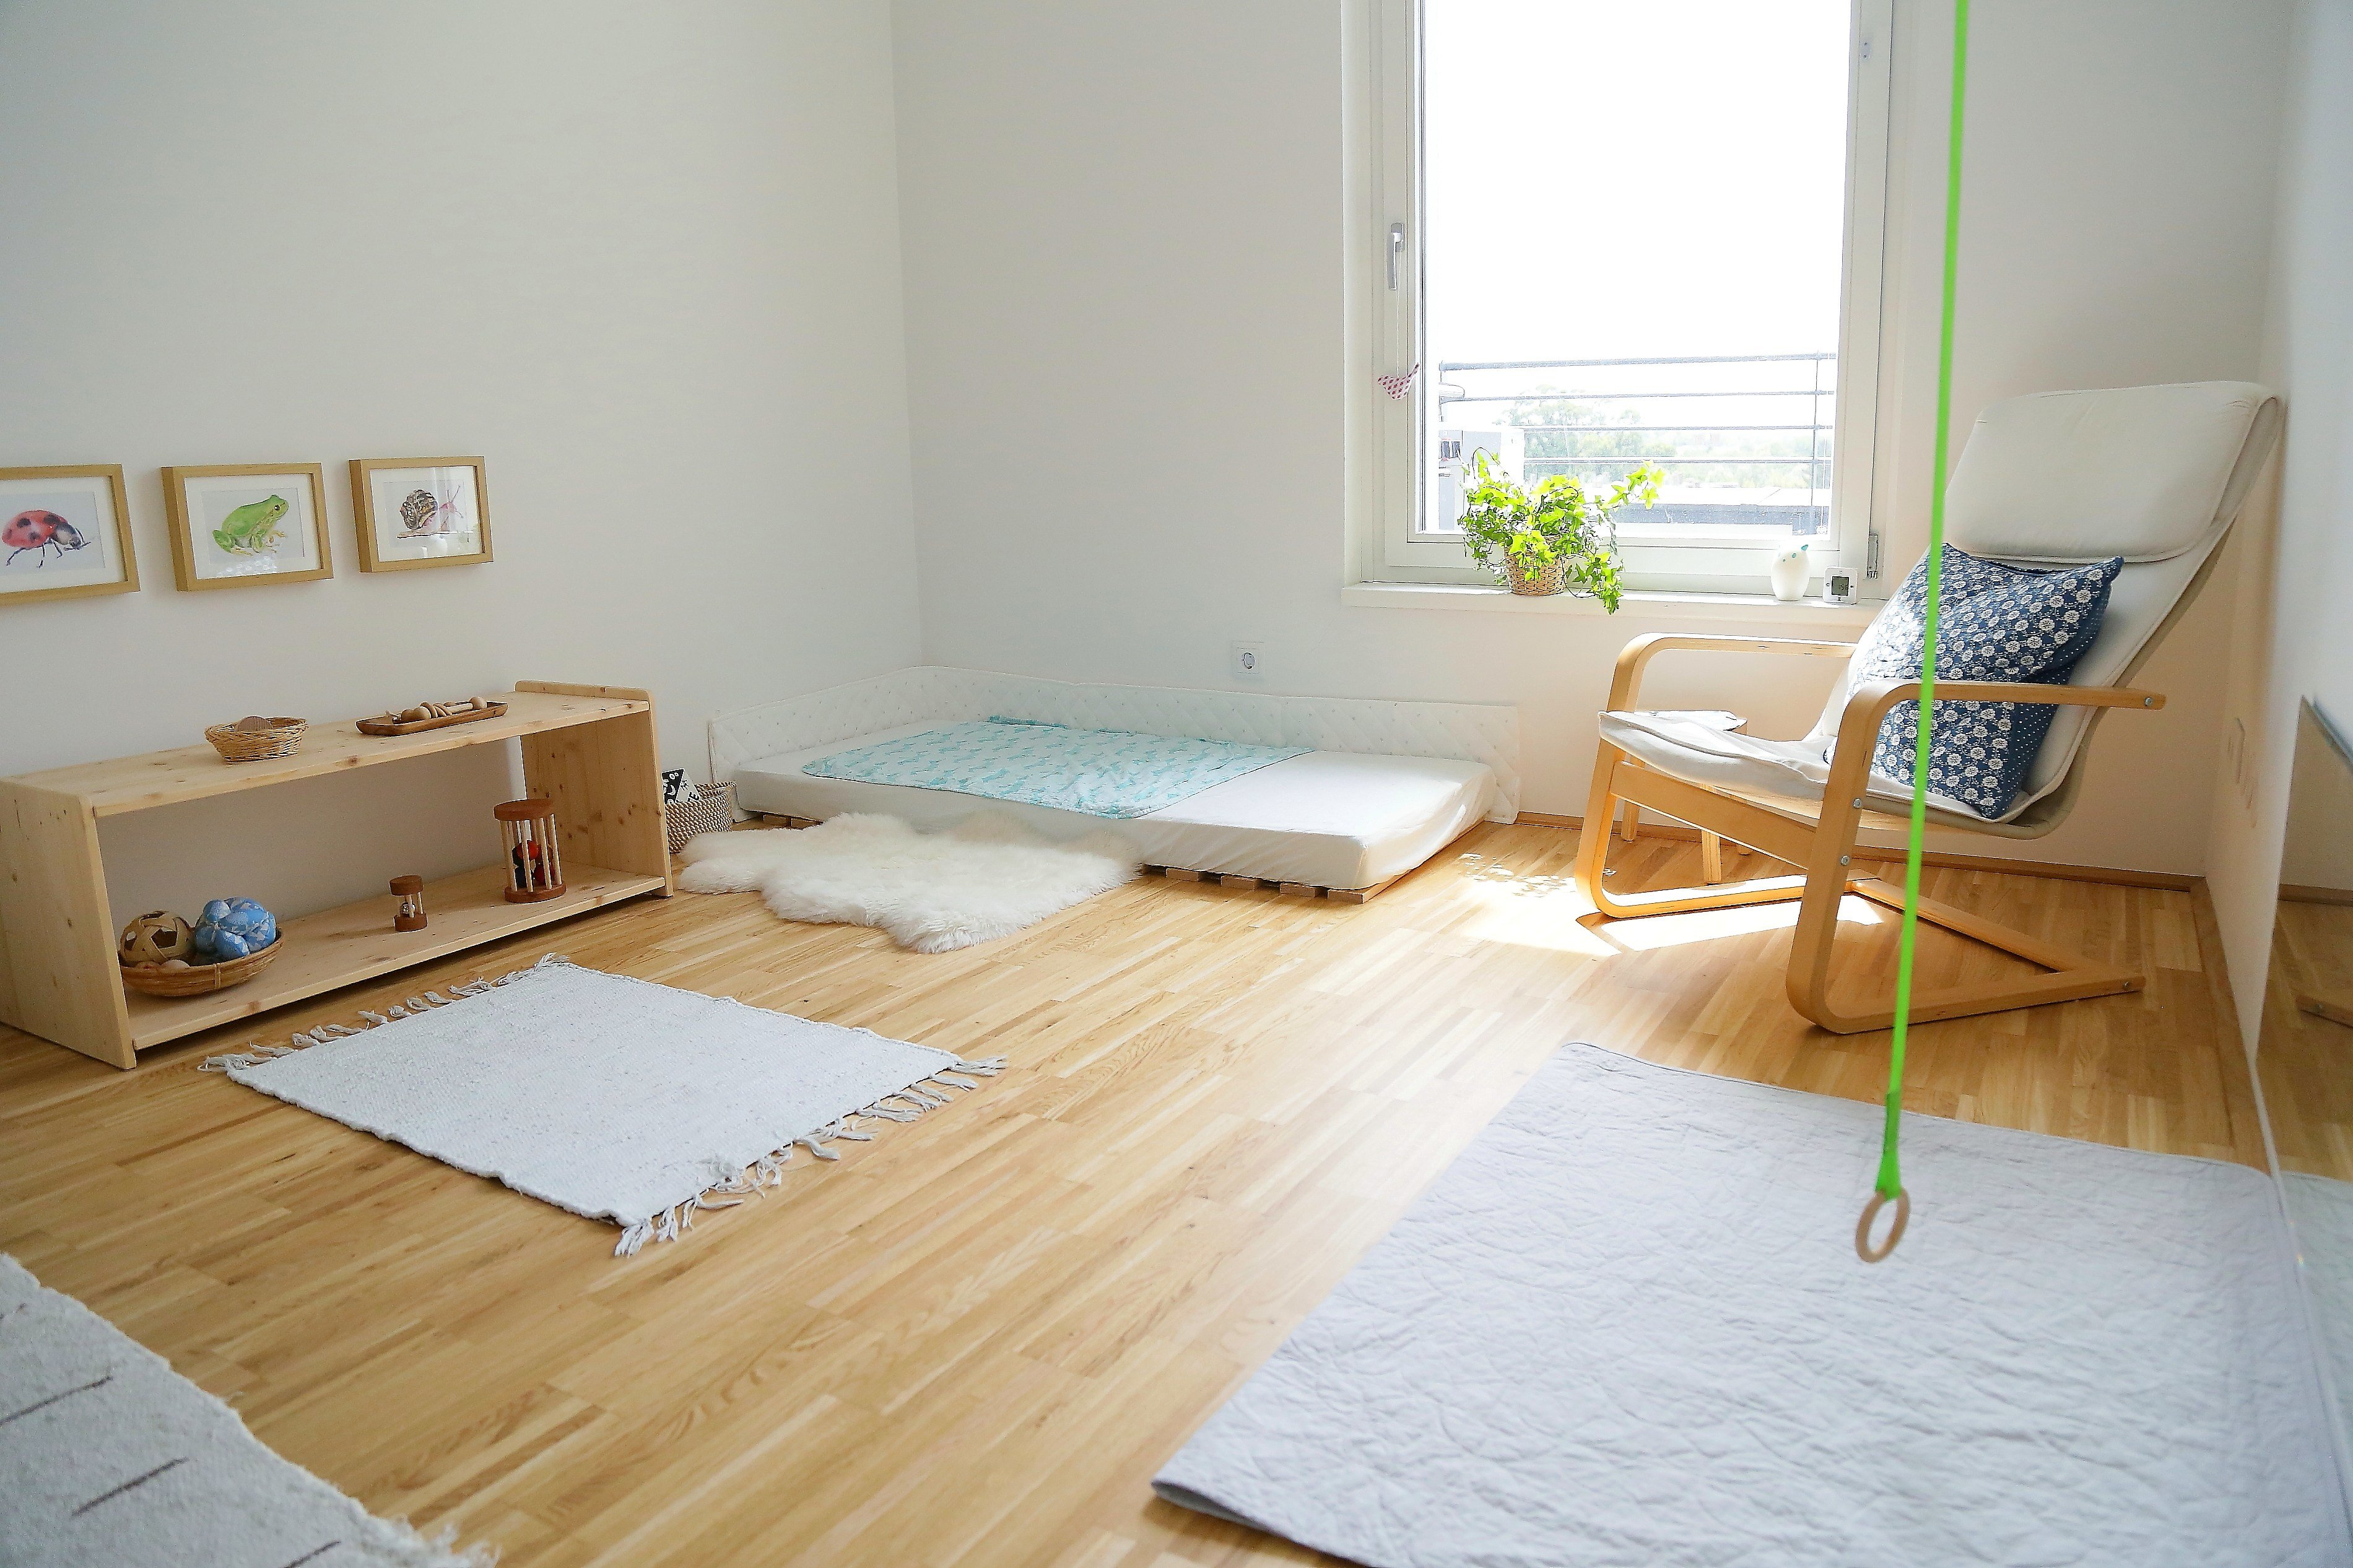 Best Summer Series Montessori Home Tour 2 A Peek Inside With Pictures